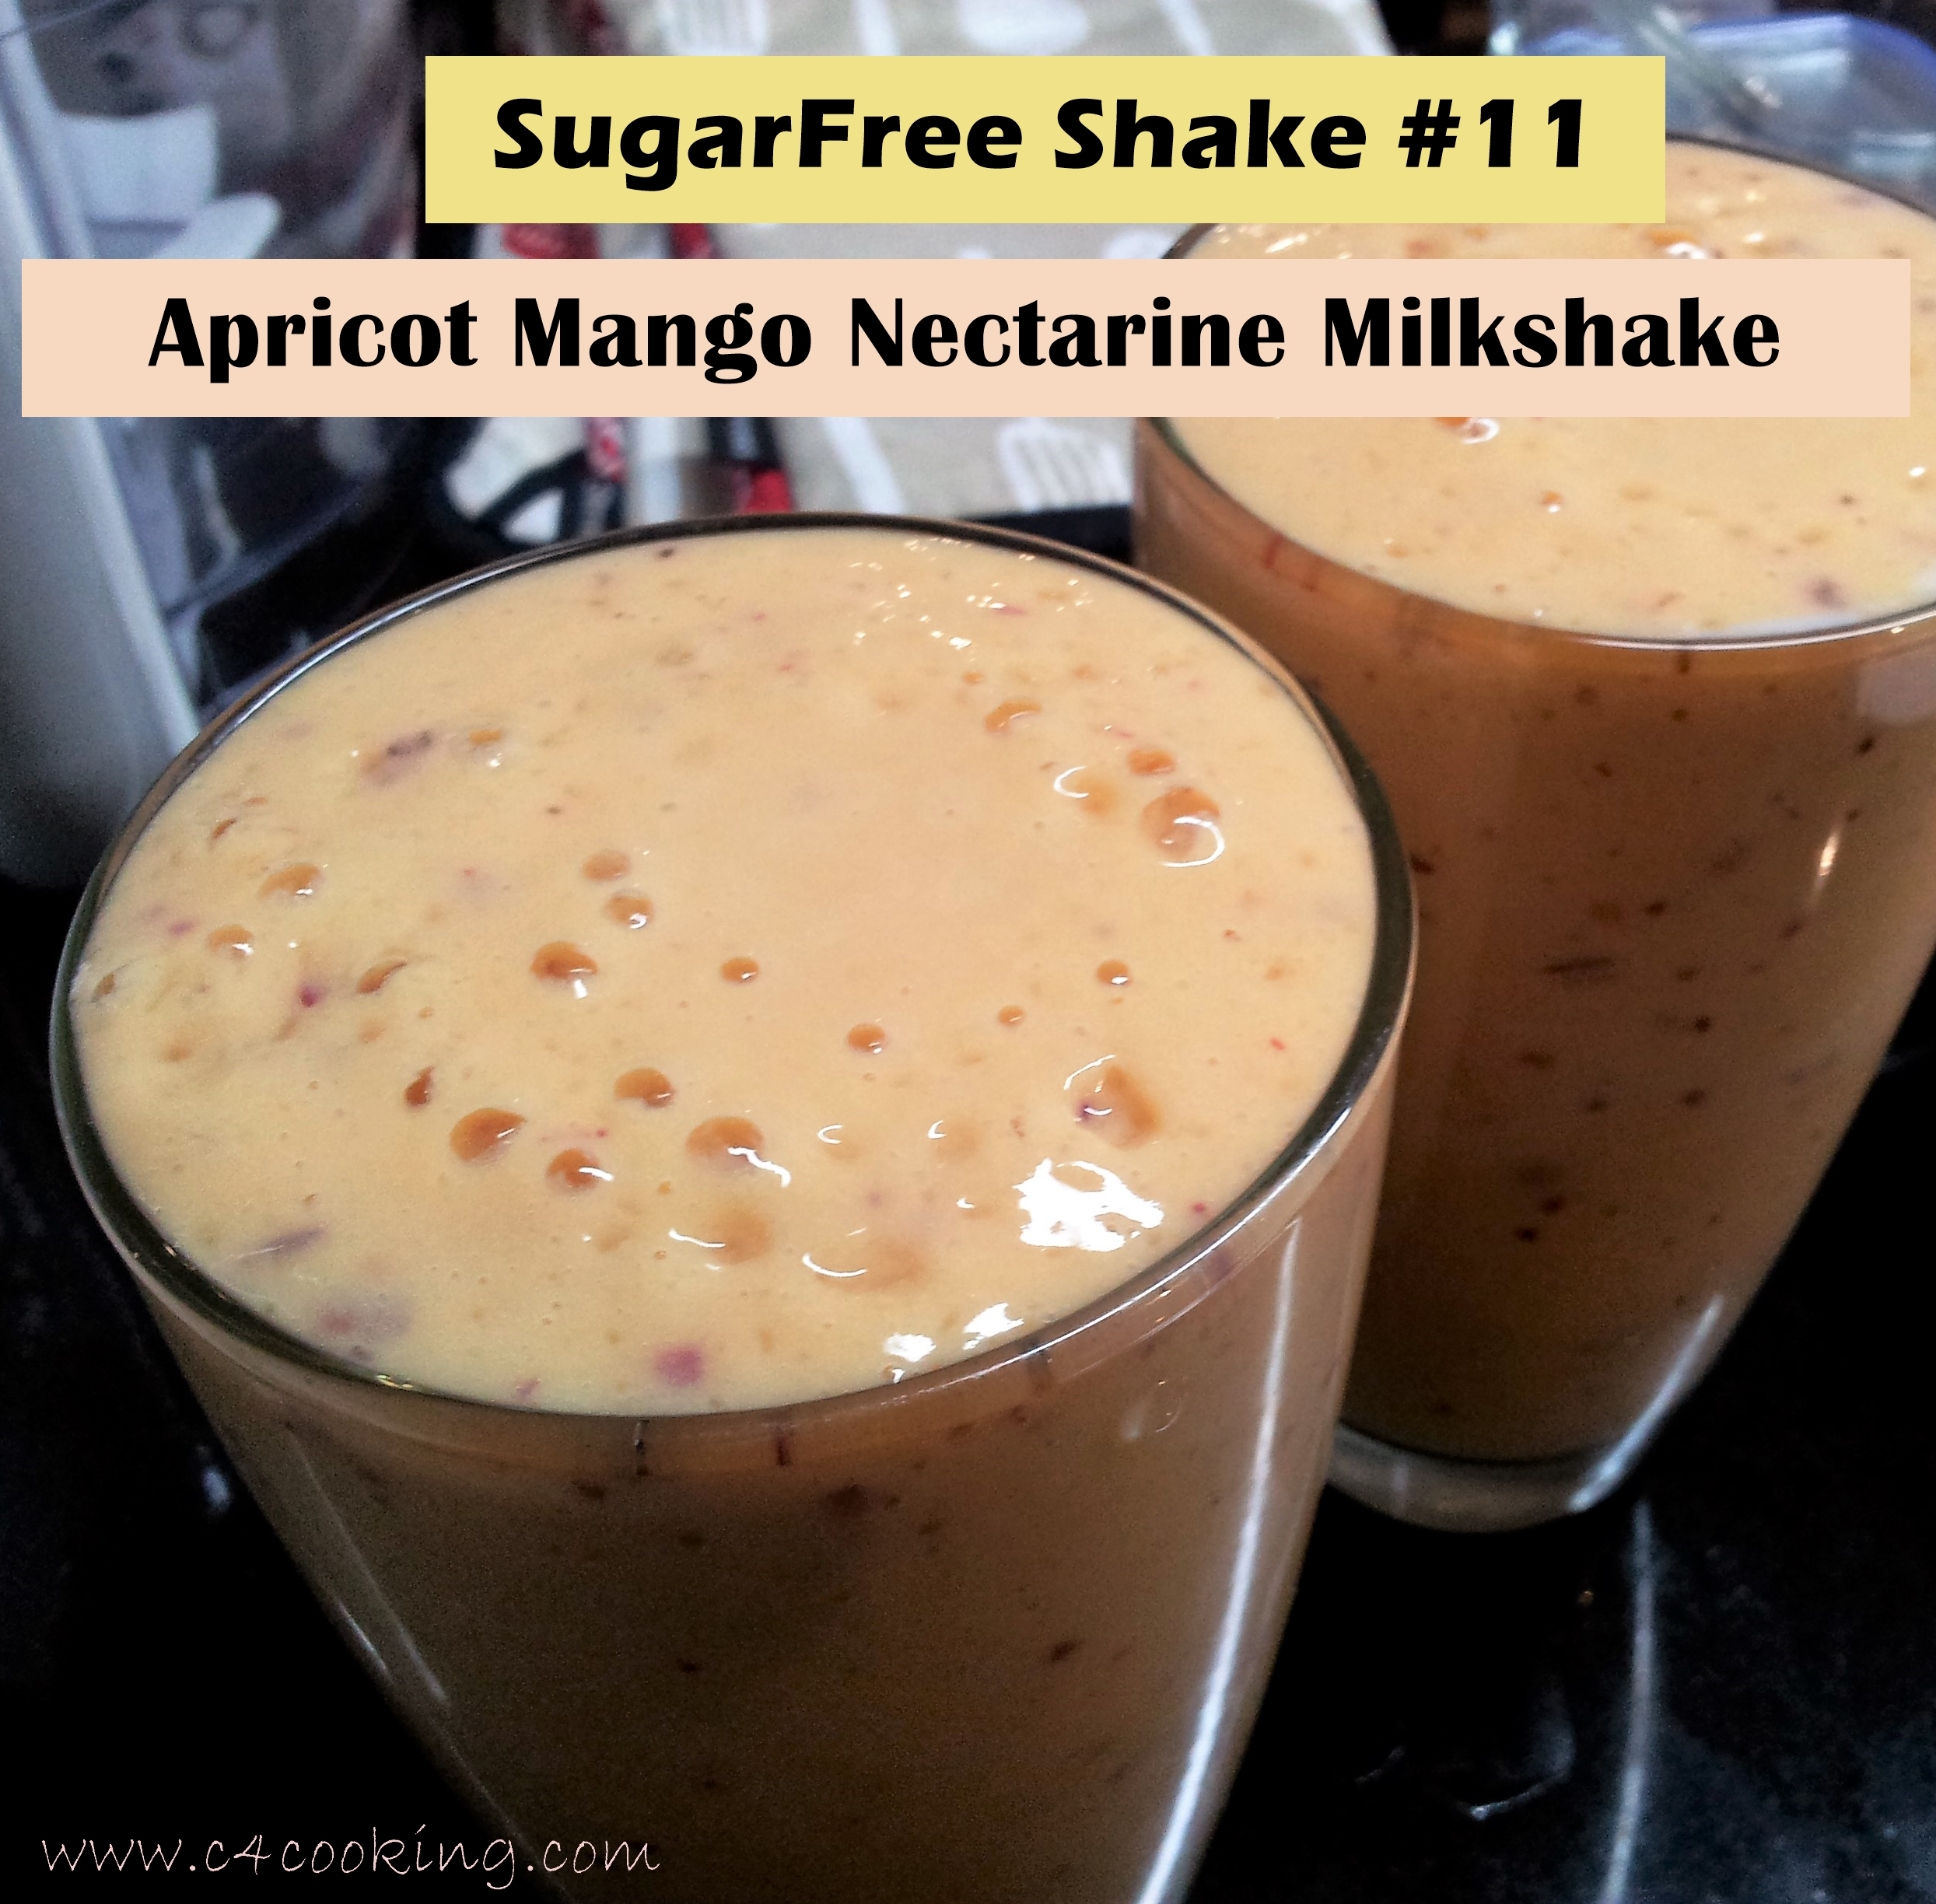 shake #11 mango aprciot nectarine shake, sugarfree shake mango milkshake, c4cooking 365 days of guiltfree shakes